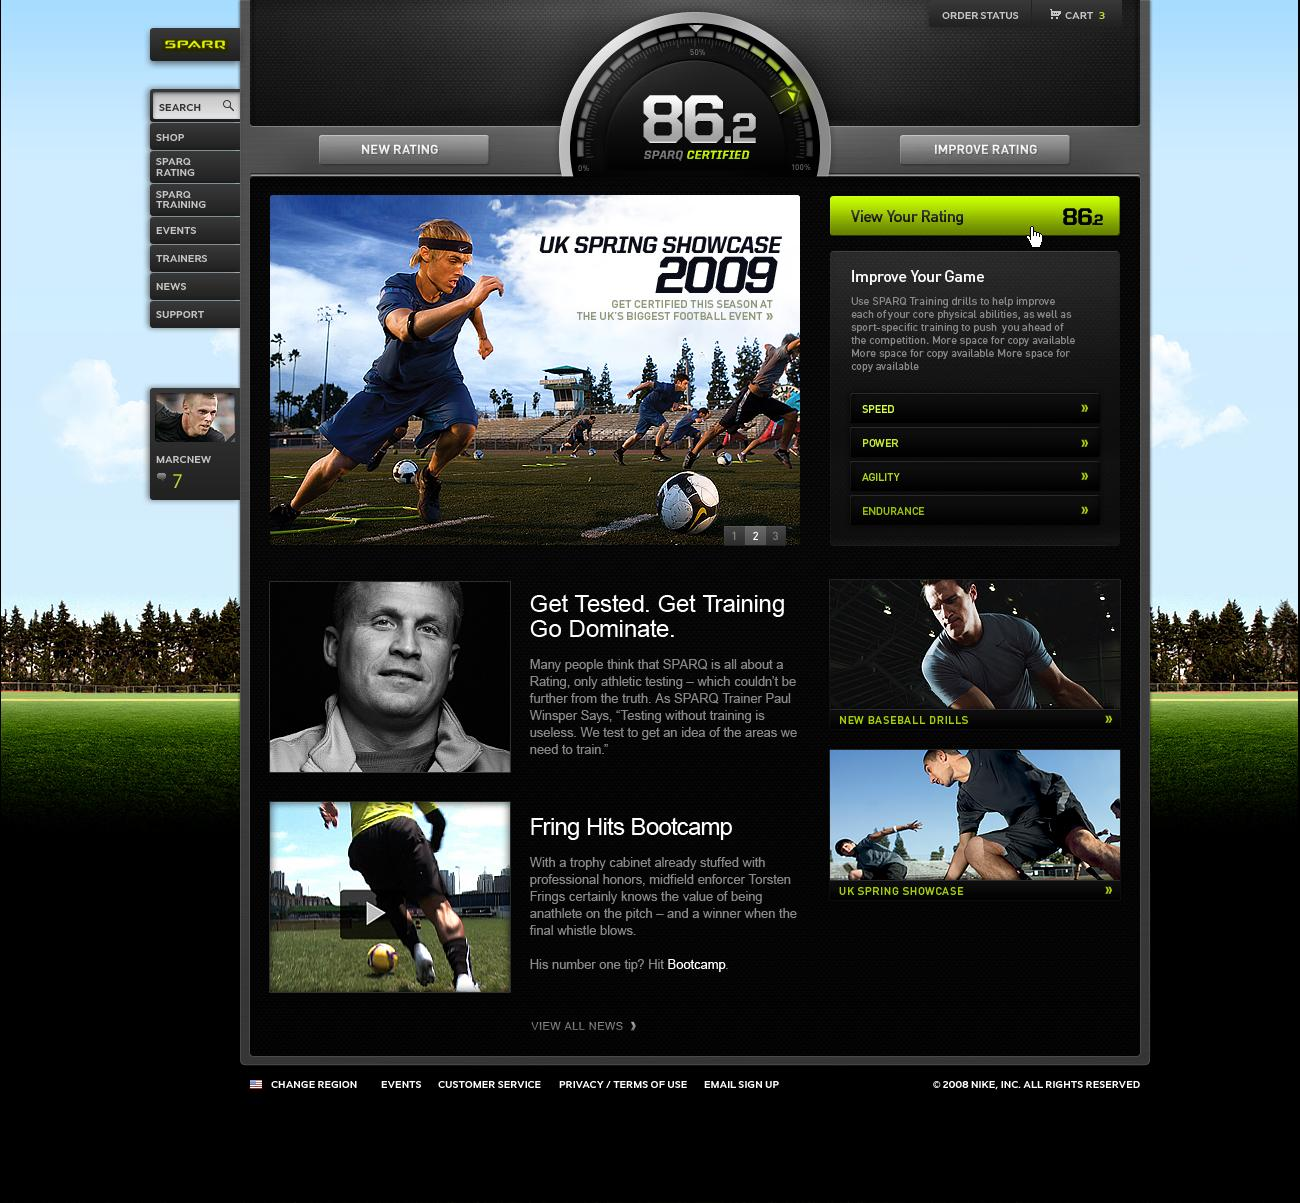 03_SPARQ_Homepage_Loggedin_Rating.jpg (1300×1203)